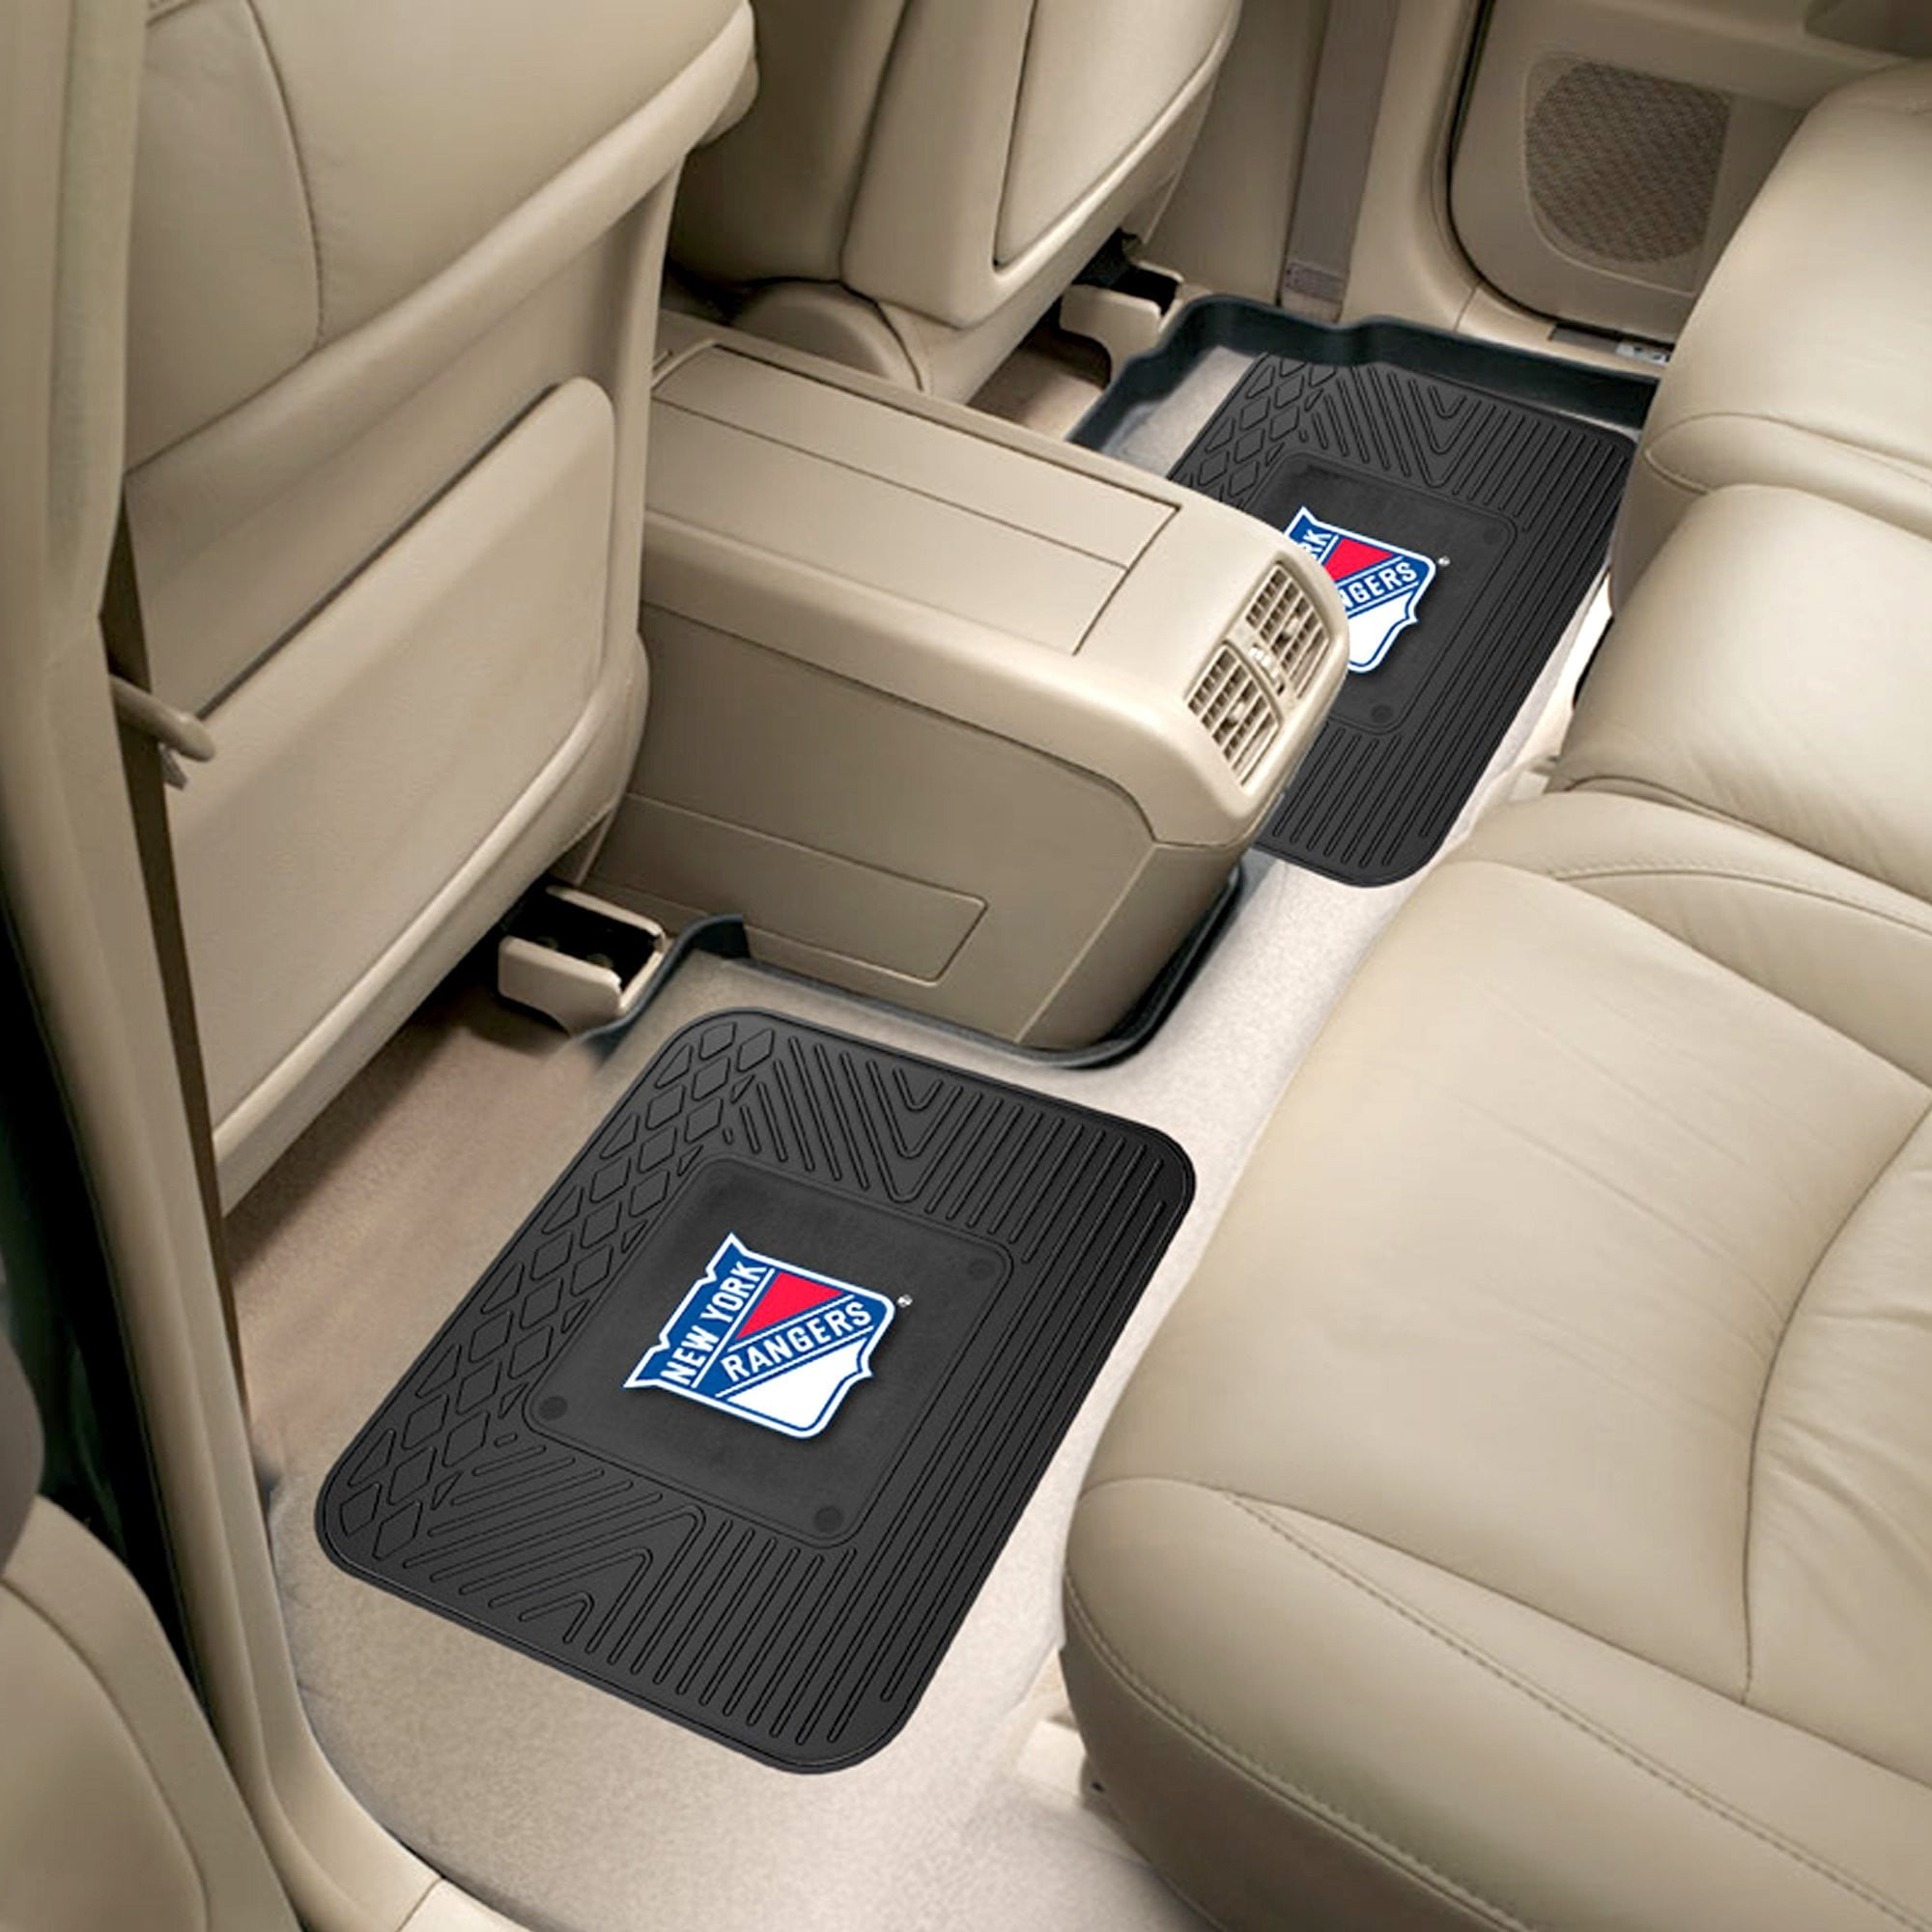 NHL - New York Rangers 2 Utility Car Mats